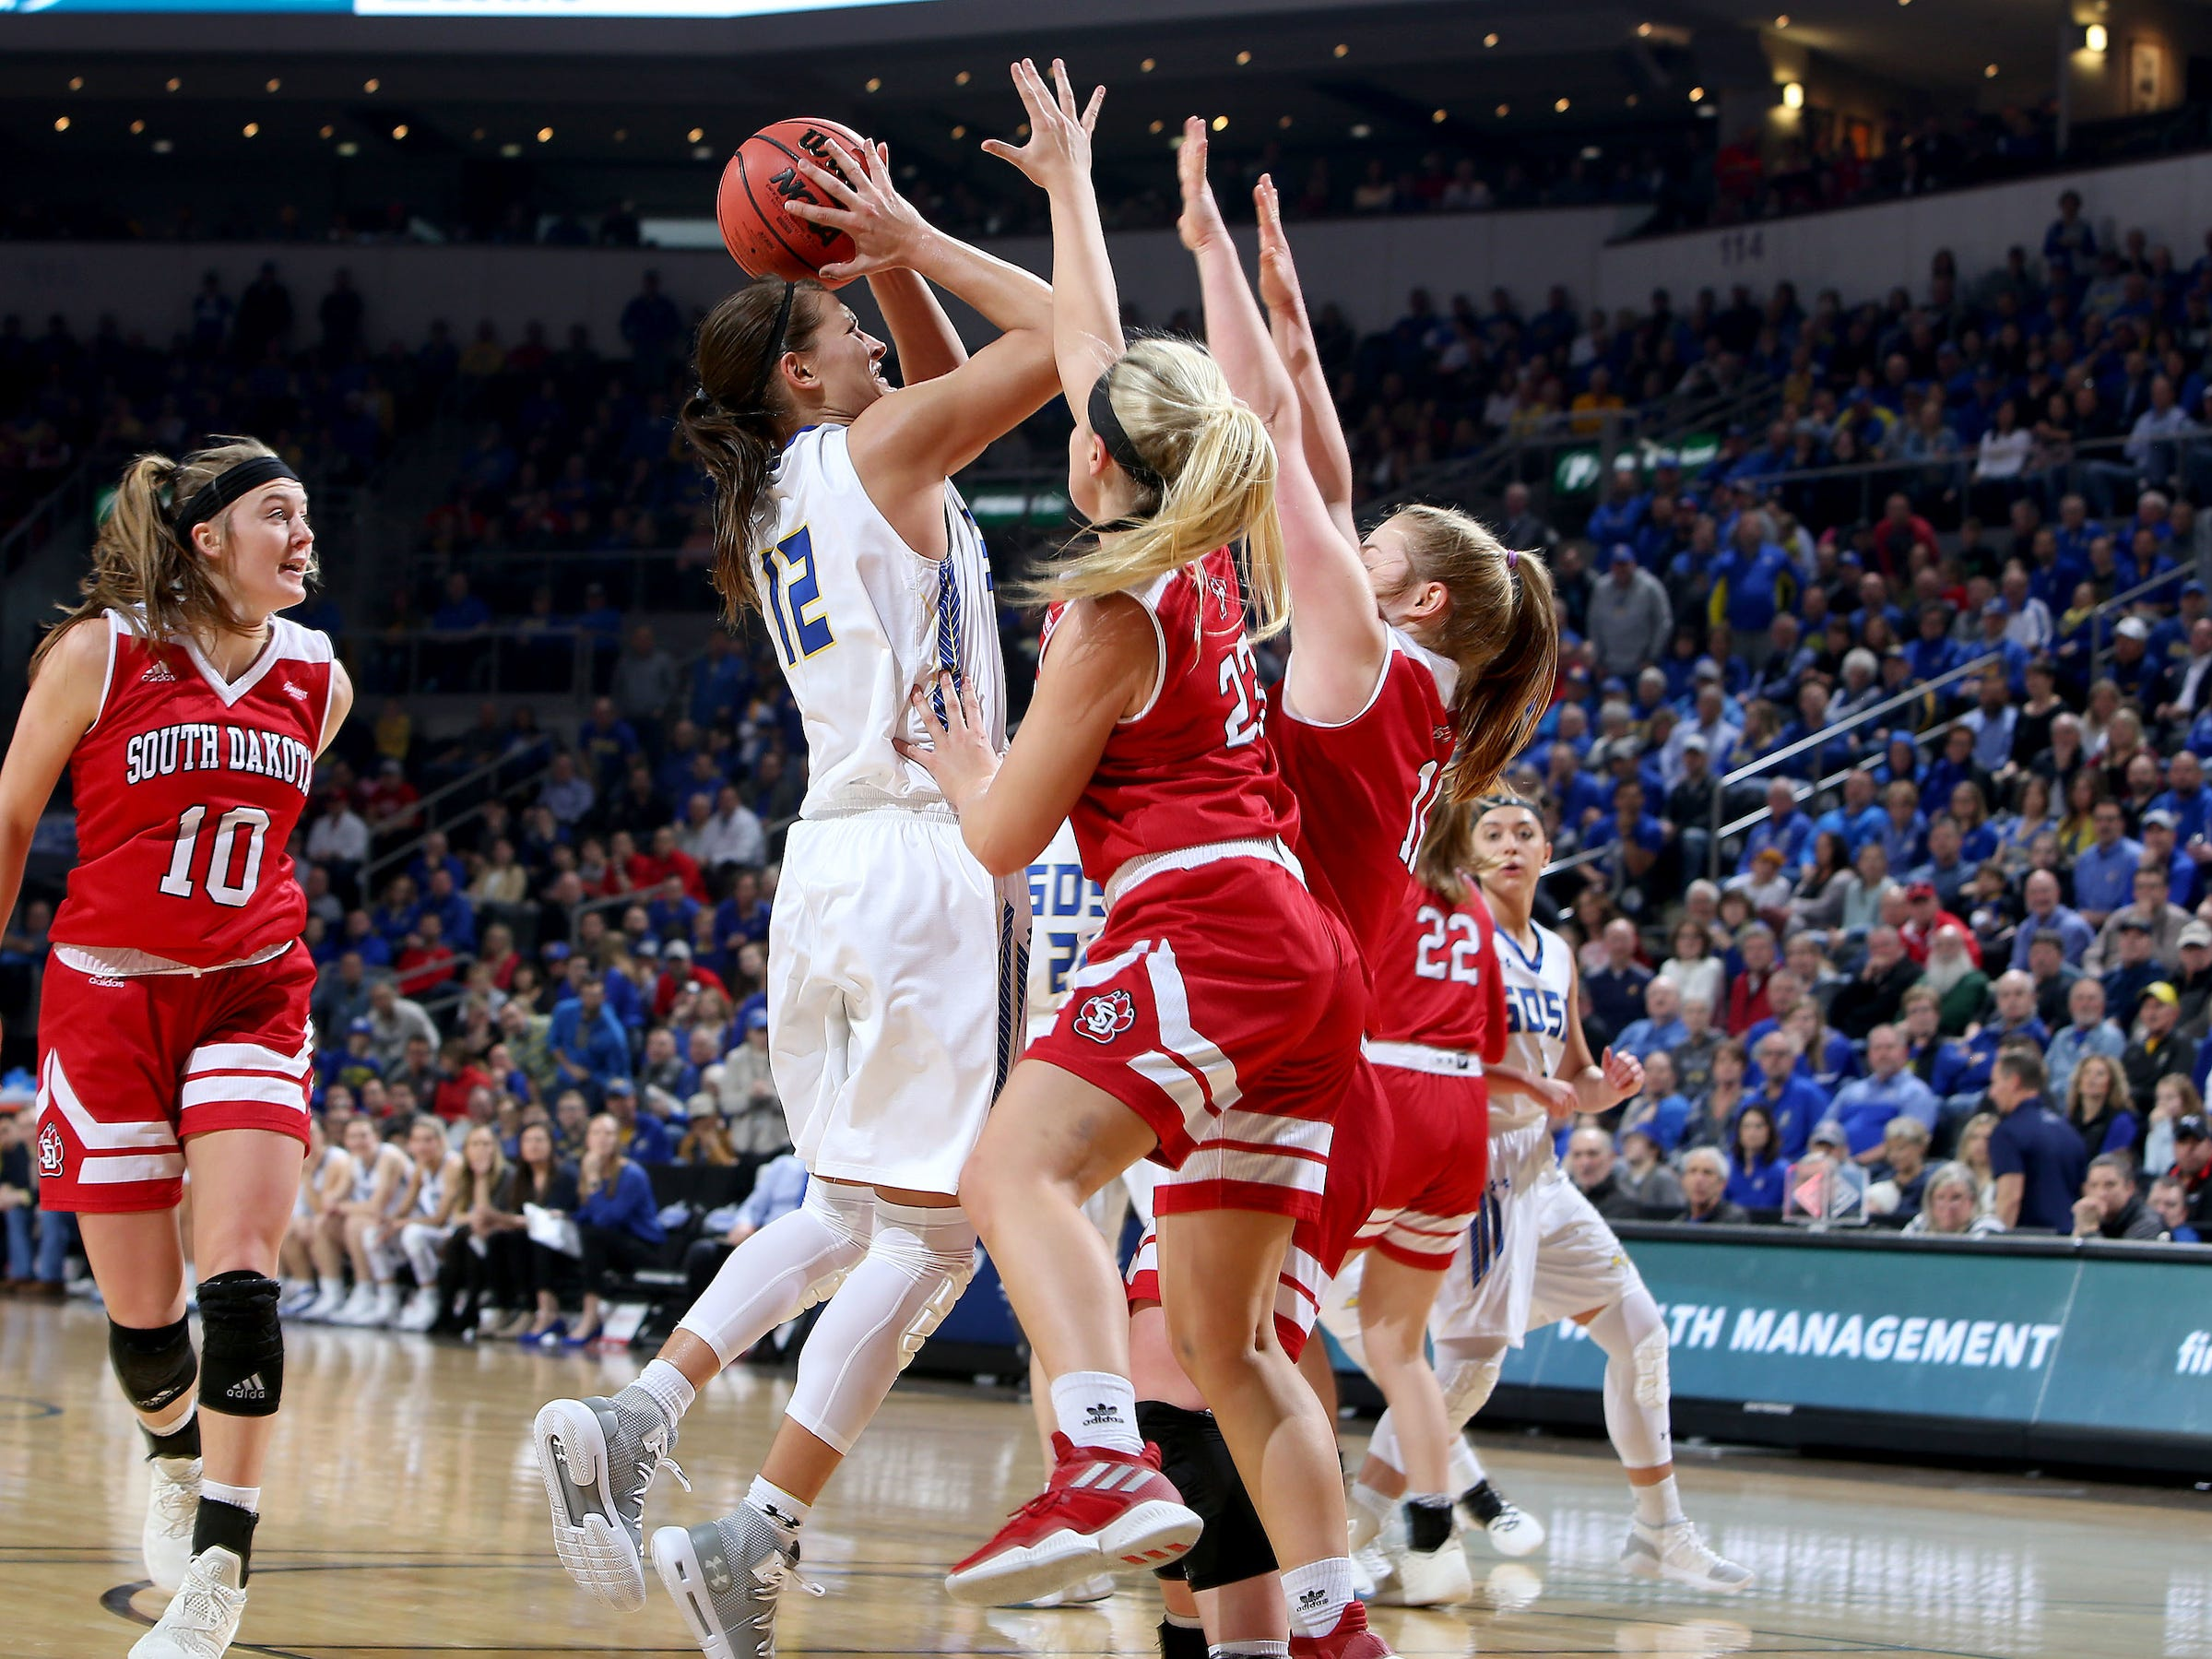 SIOUX FALLS, SD - MARCH 11: Macy Miller #12 from South Dakota State shoots over two pairs of hands belonging to Madison McKeever #23 and Monica Arens #11 of South Dakota at the 2019 Summit League Basketball Tournament at the Denny Sanford Premier Center in Sioux Falls. (Photo by Dave Eggen/Inertia)